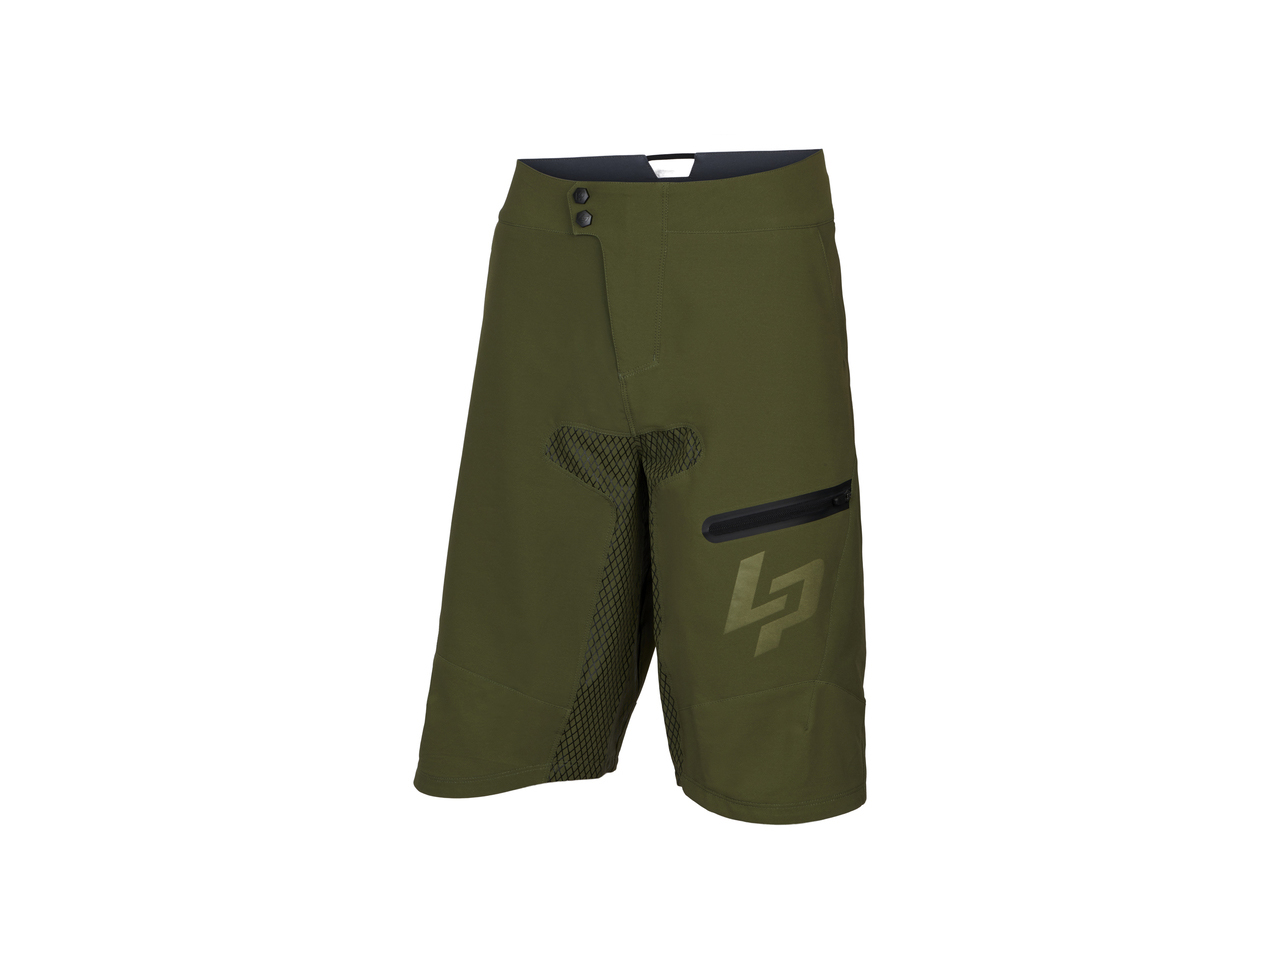 Lapierre Ultimate Fort William MTB shorts - front